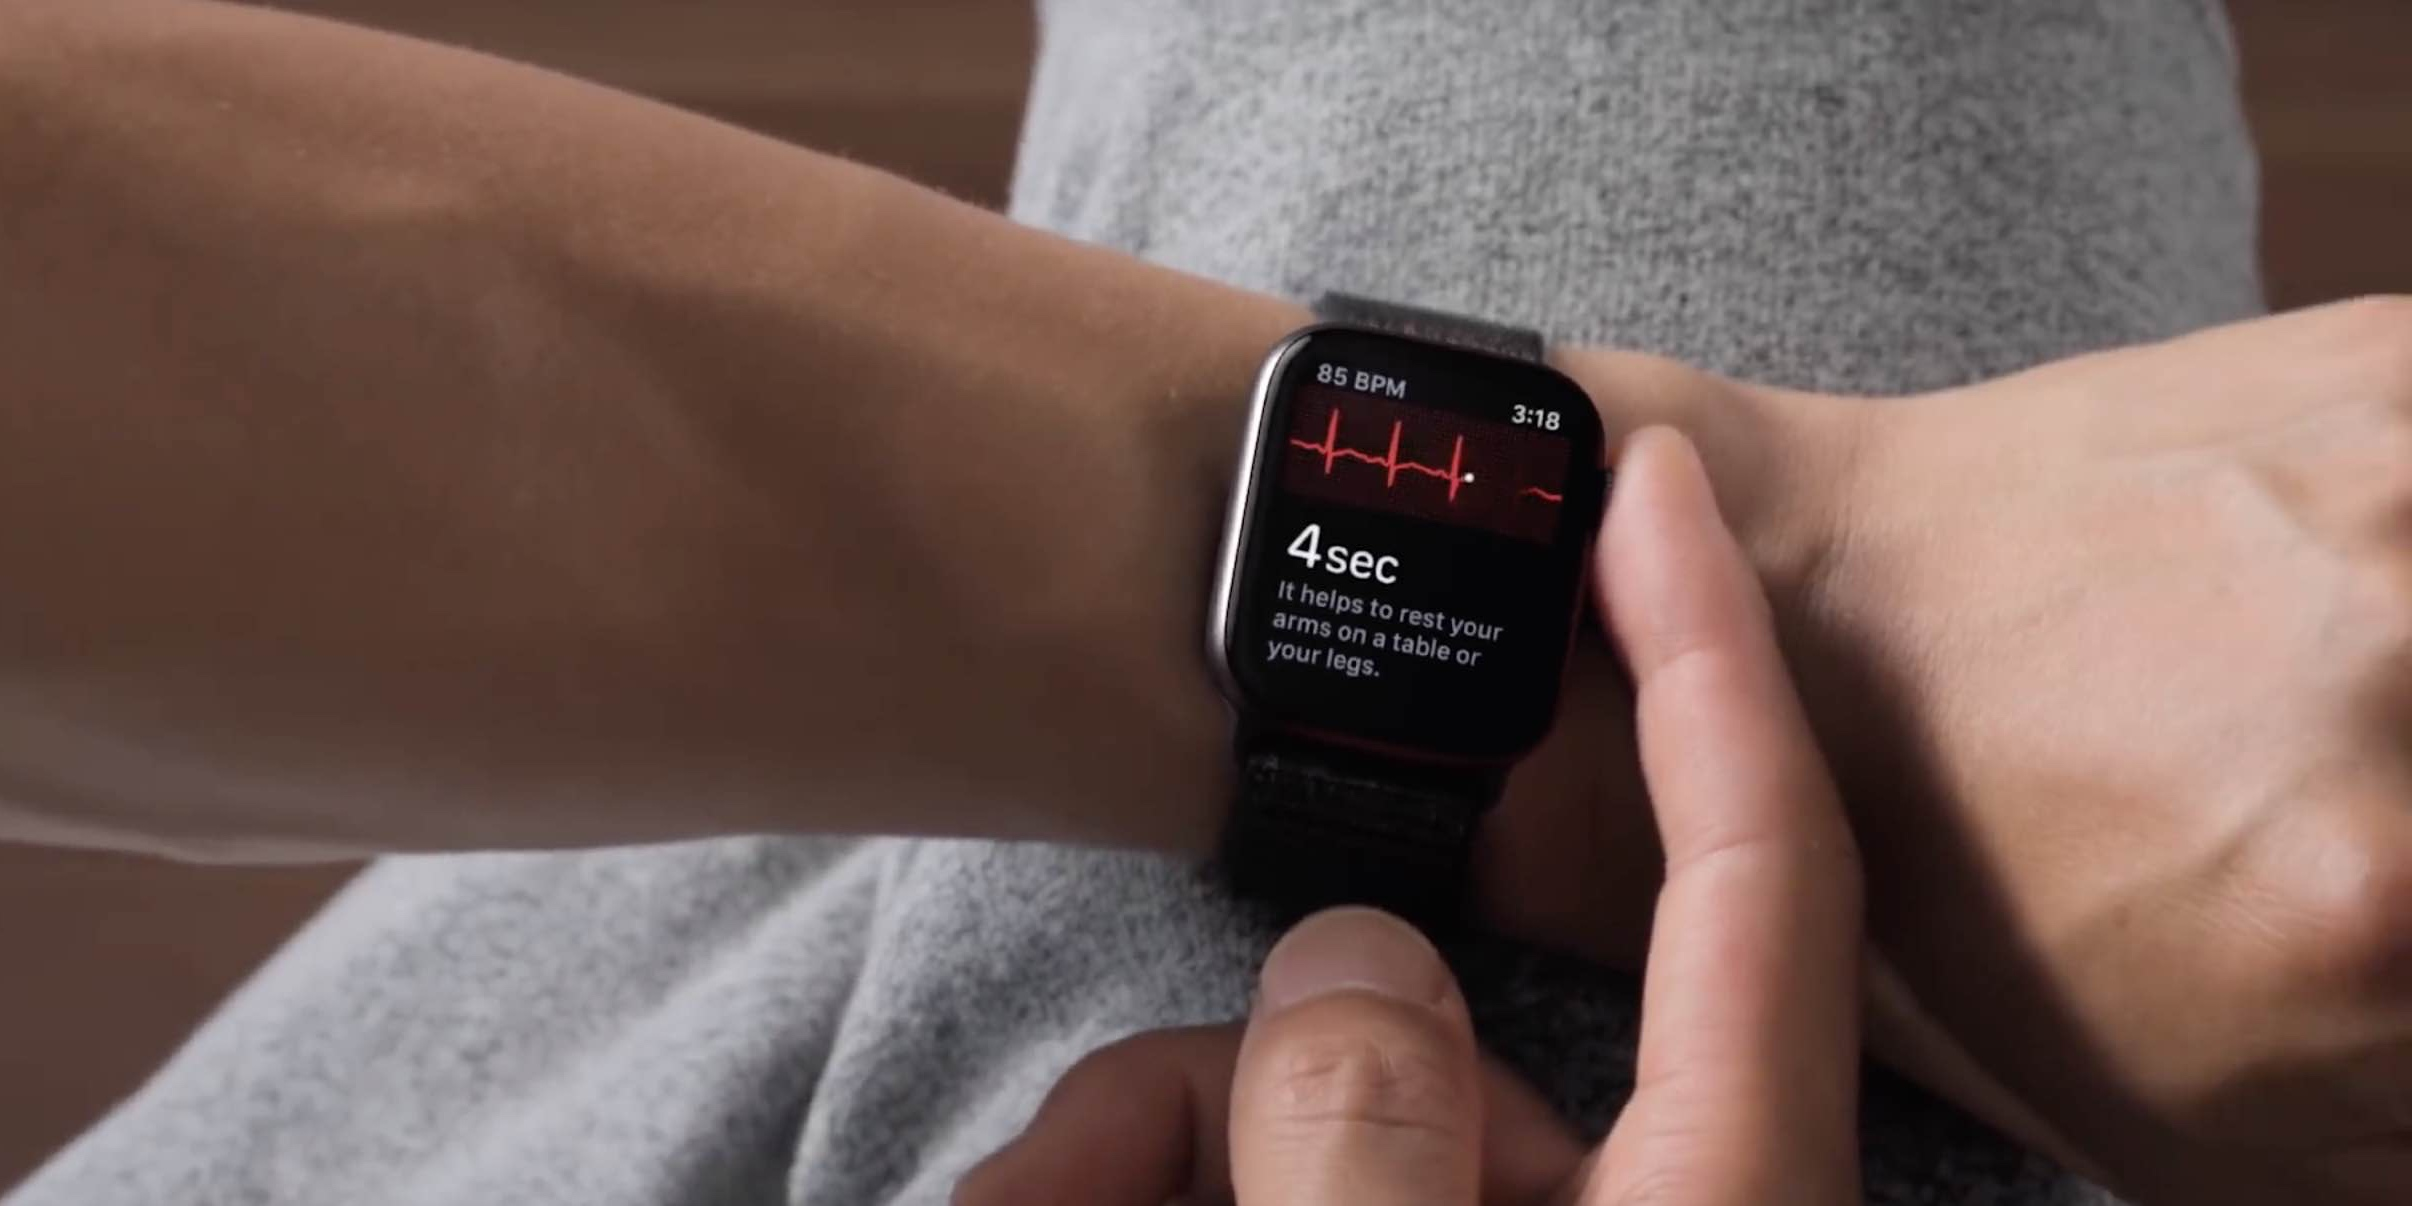 Apple Watch Series 4 getting the ECG app today with watchOS 5.1.2